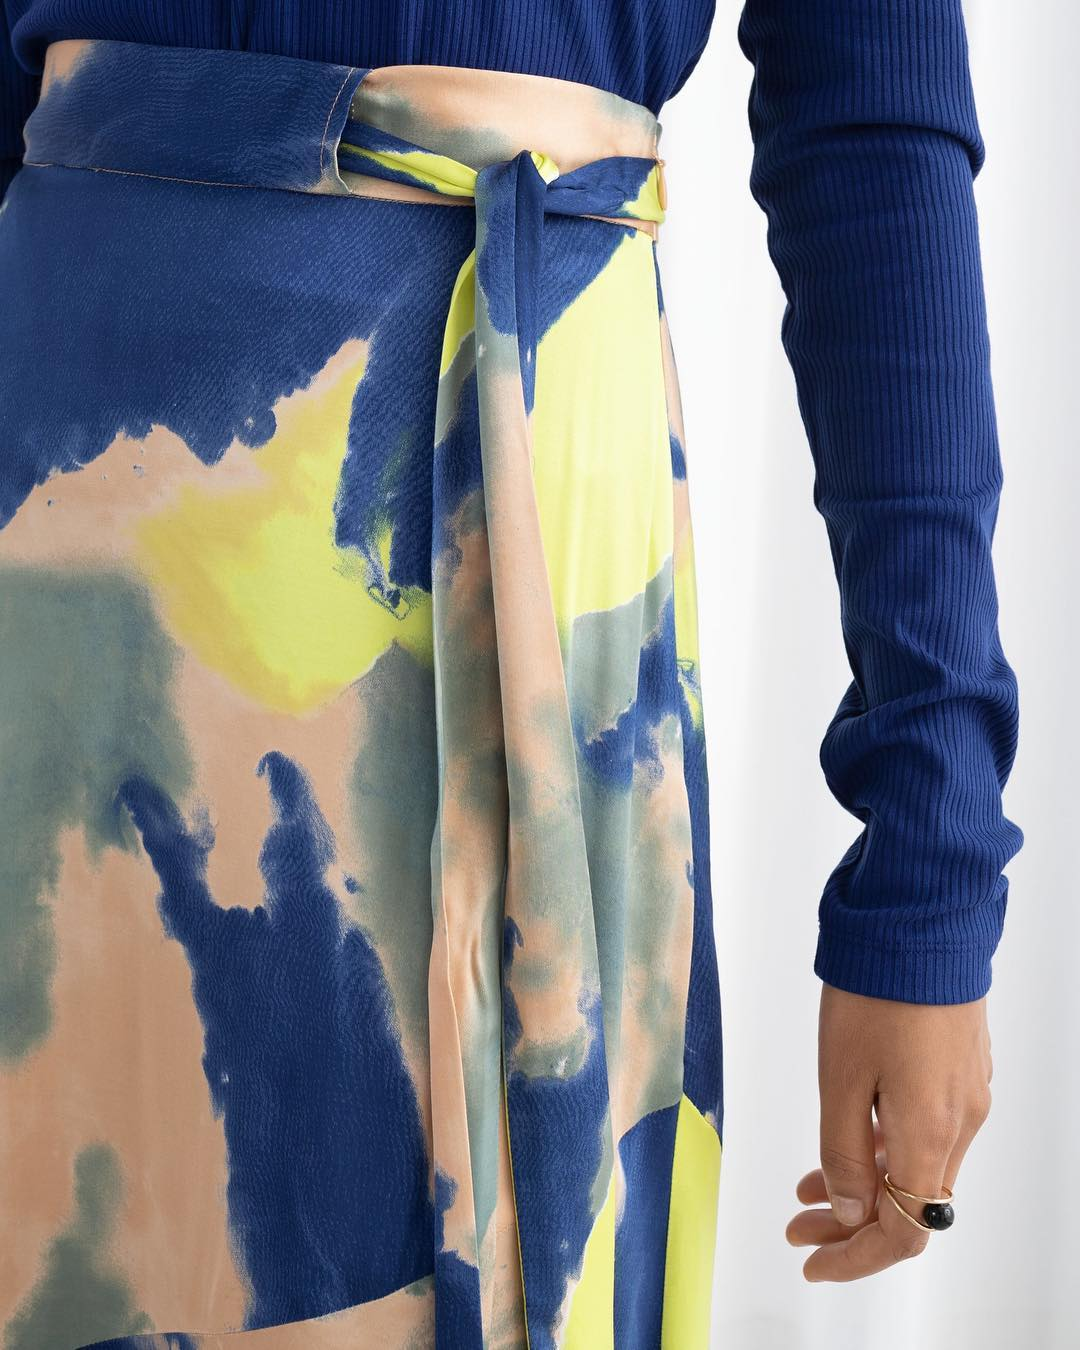 Make a Splash in Tie-Dye - Tie your outfit together with a swirl of color.Photo: @andotherstories